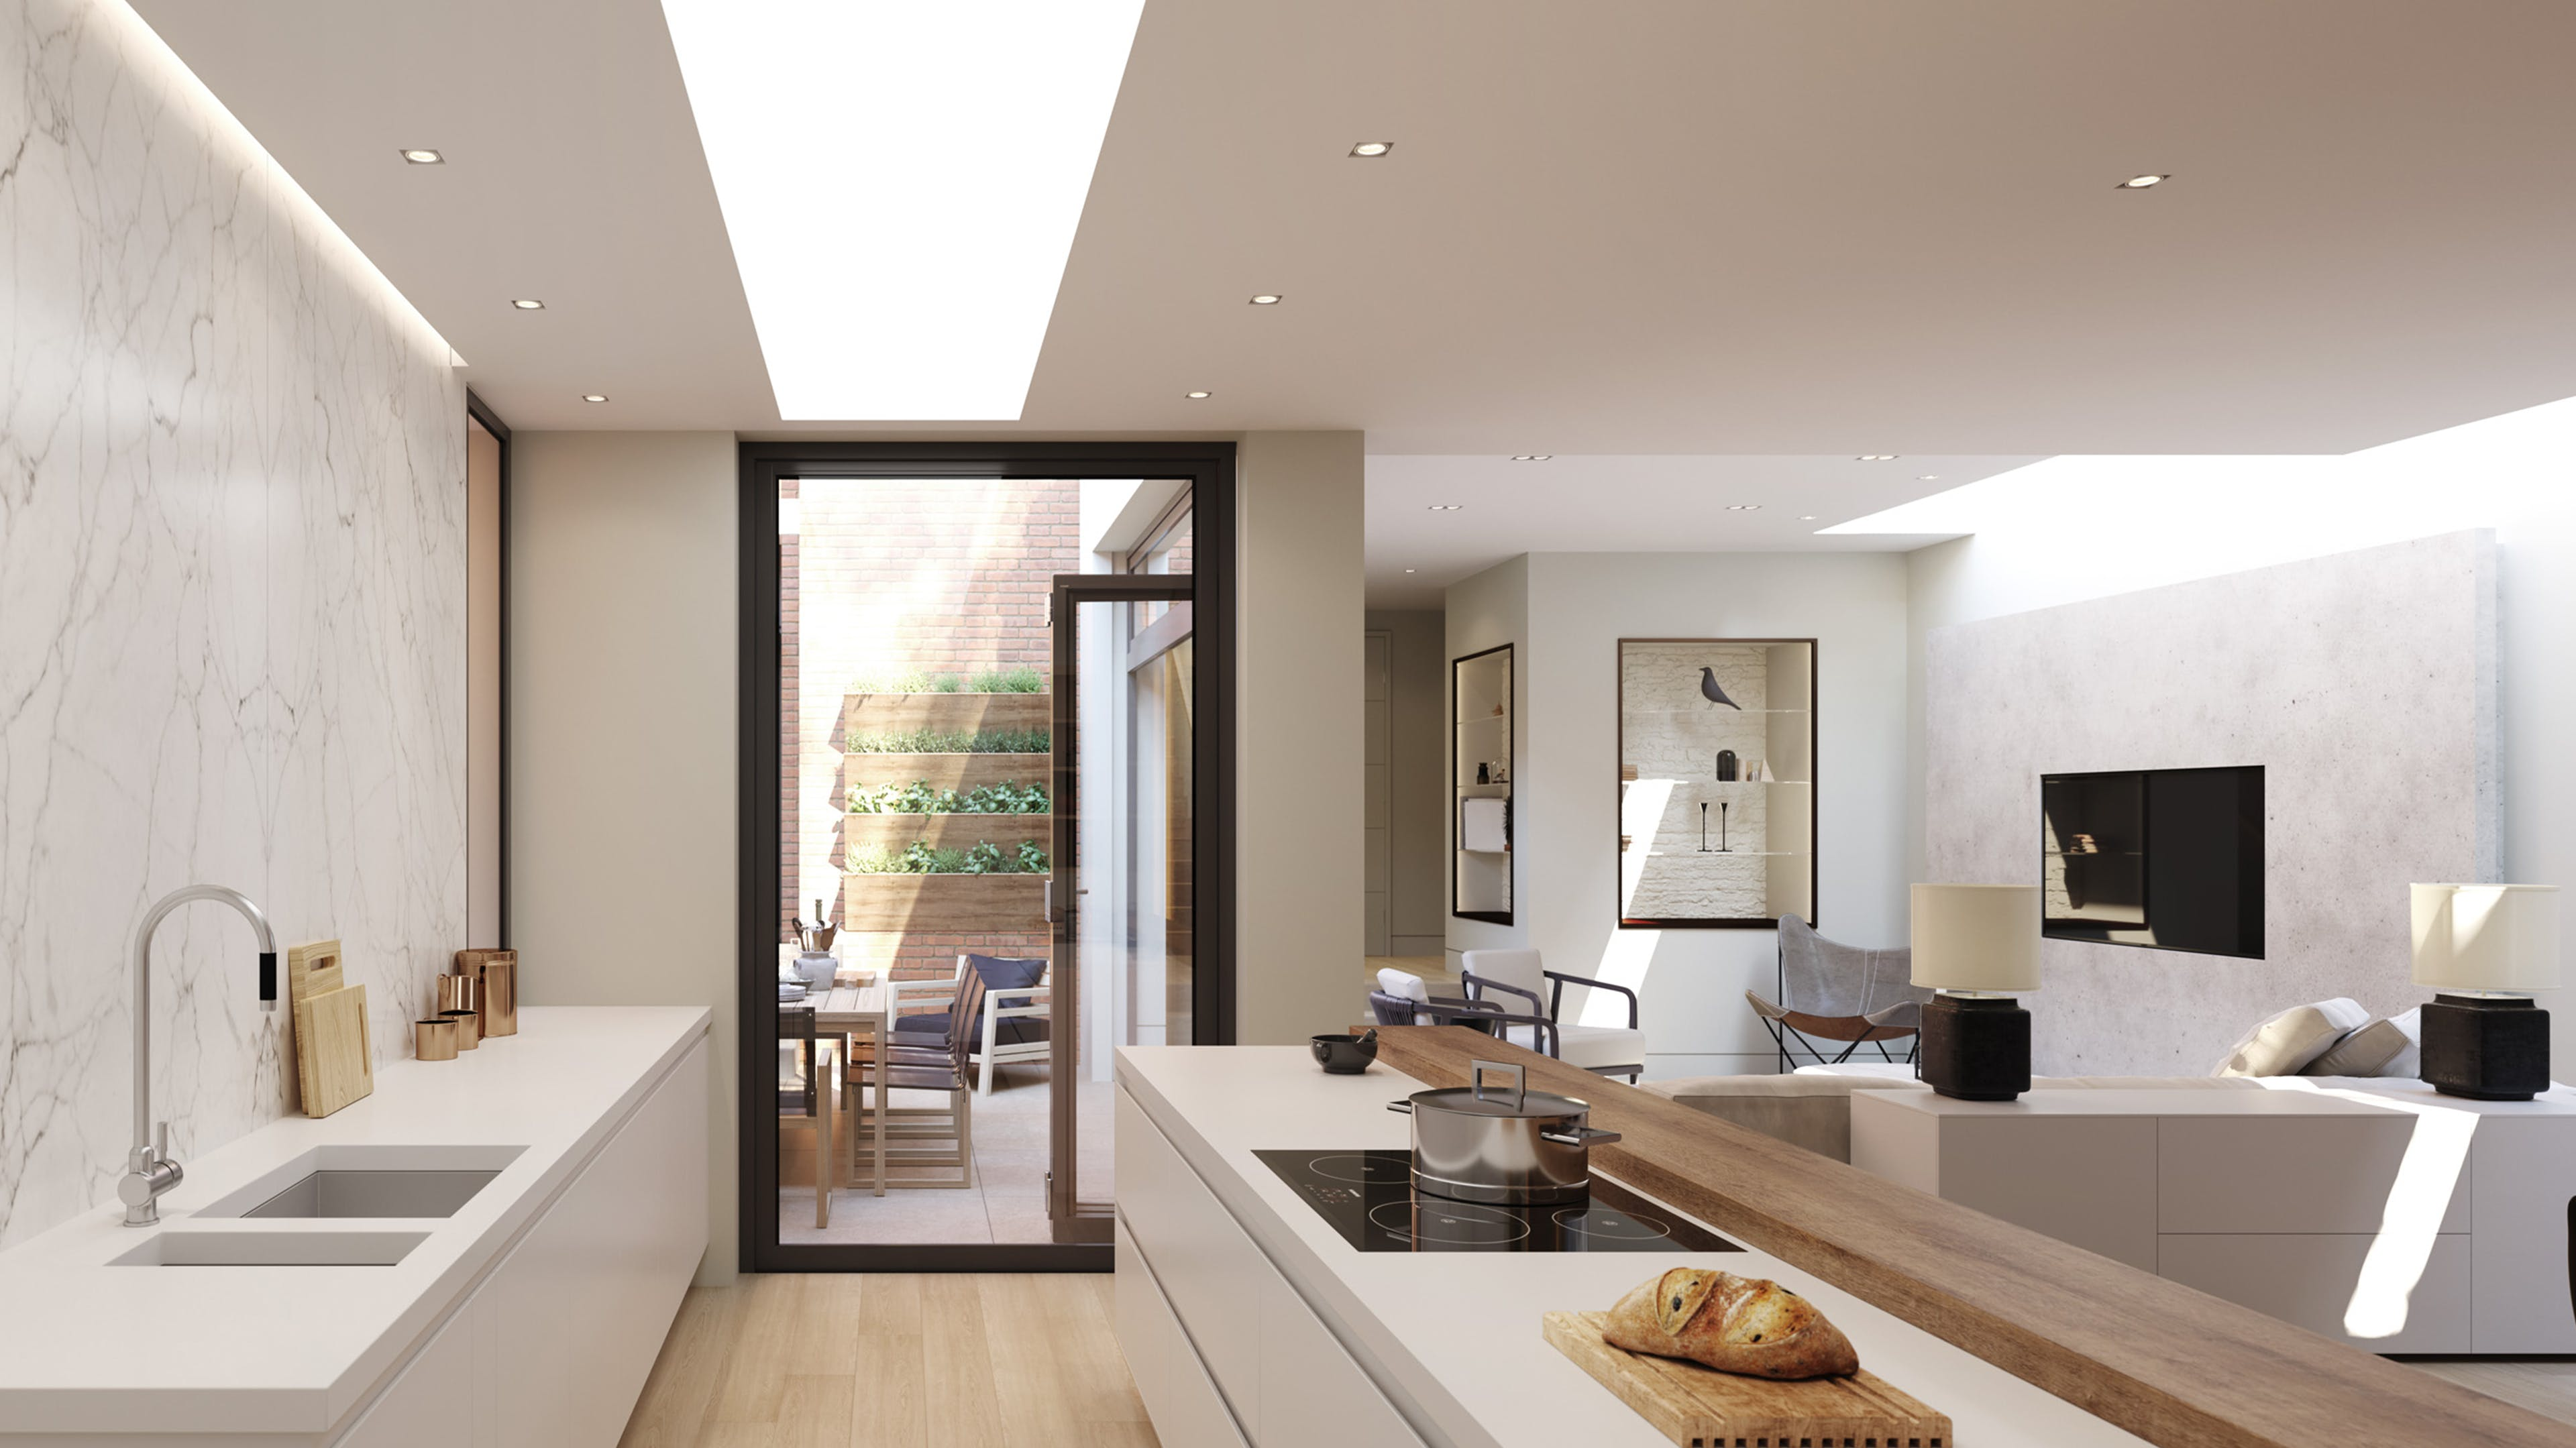 8 Esther Anne Place, Islington Square -  - New York City Townhouse Real Estate